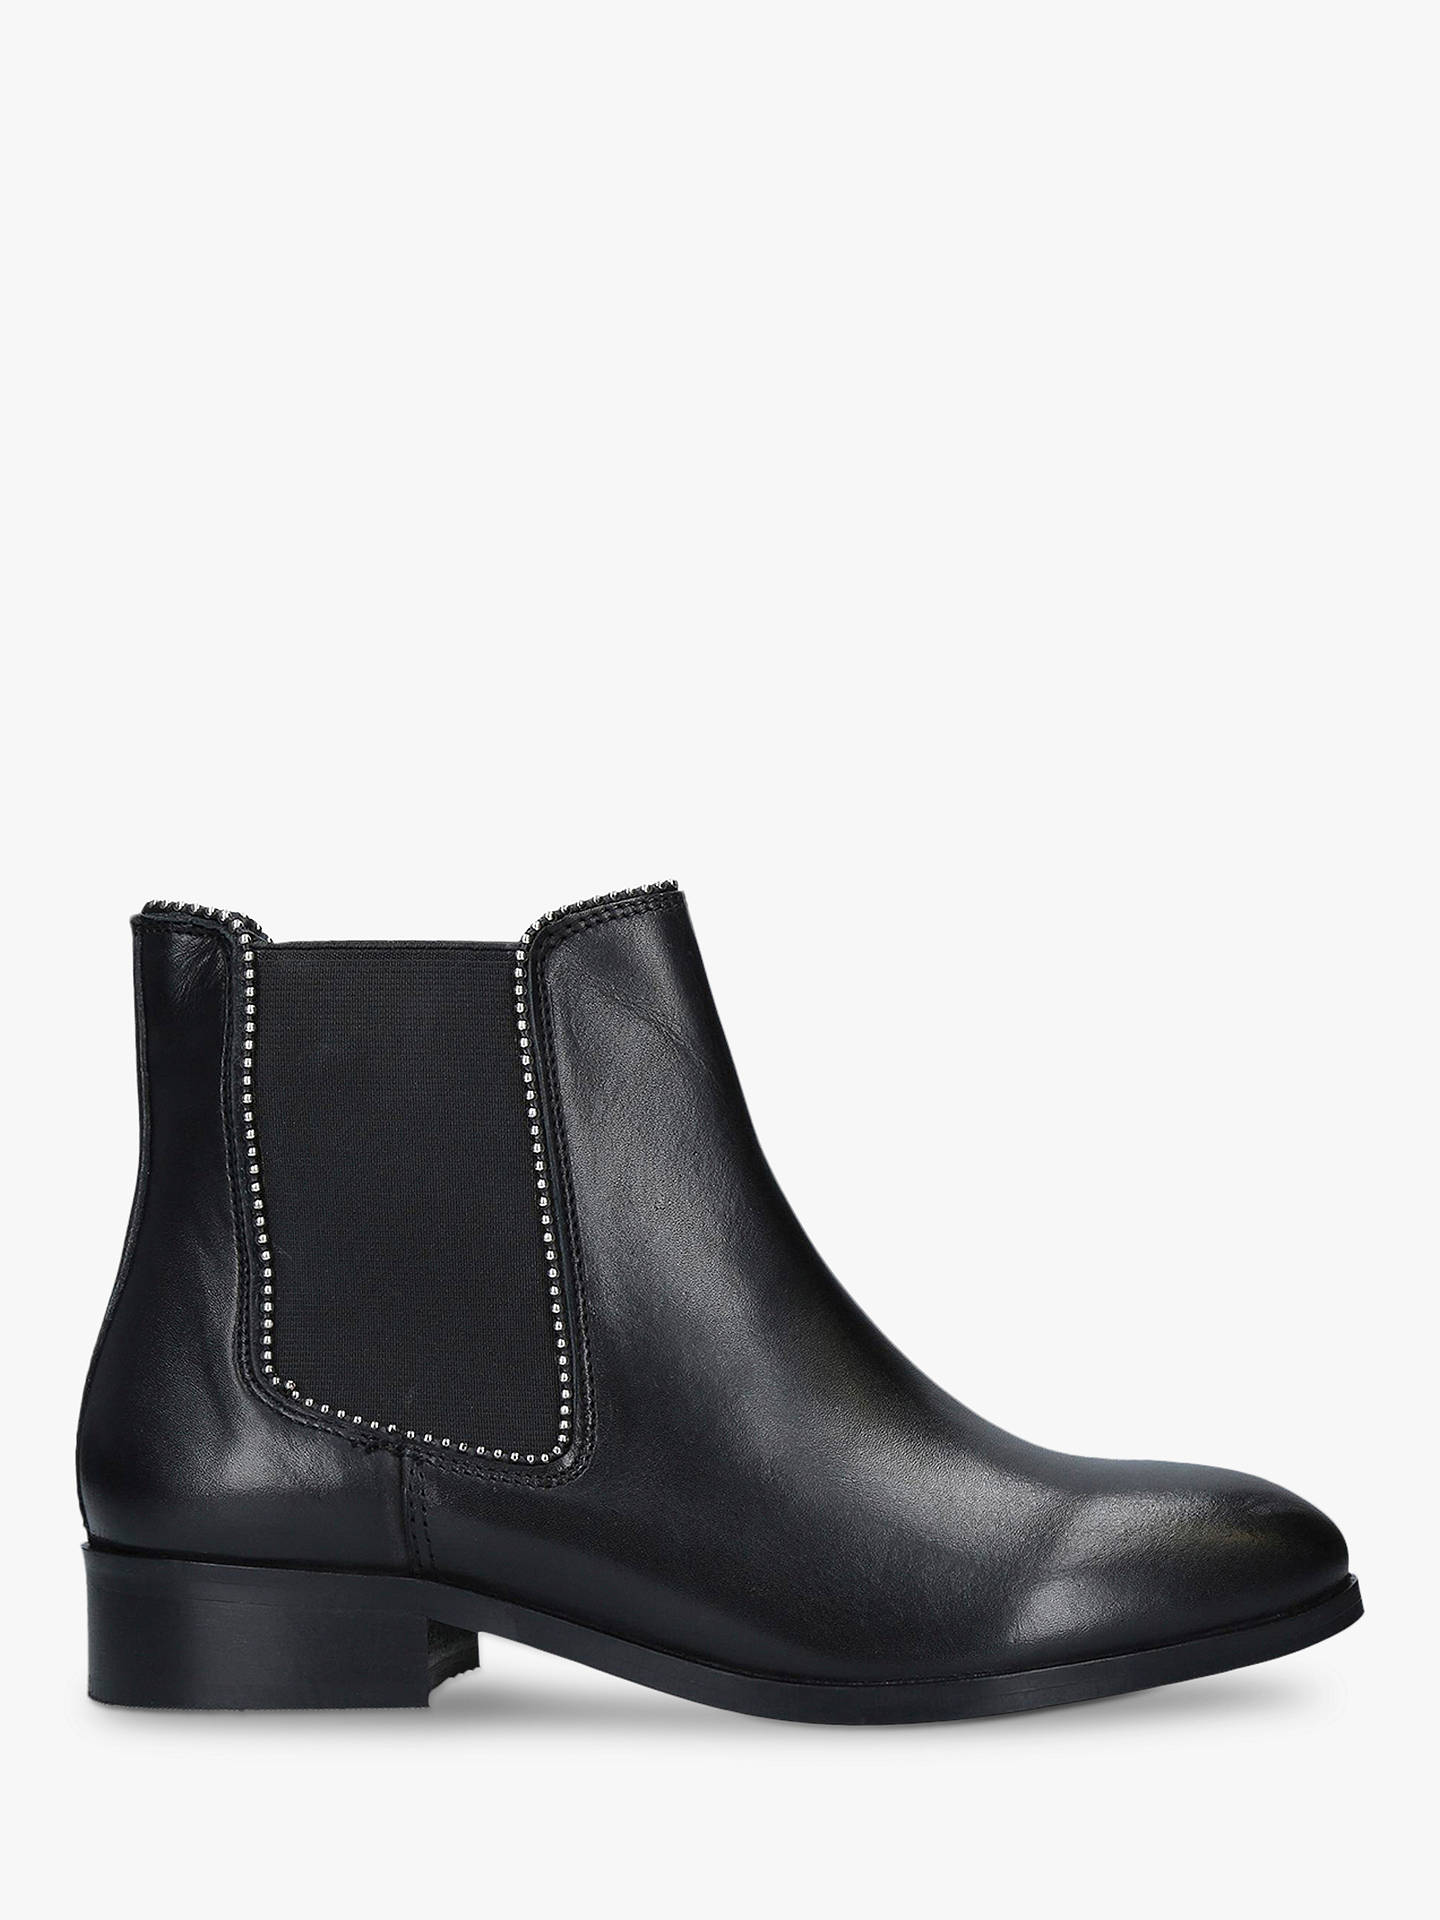 Carvela Sphere Leather Stud Detail Boots, Black by Carvela